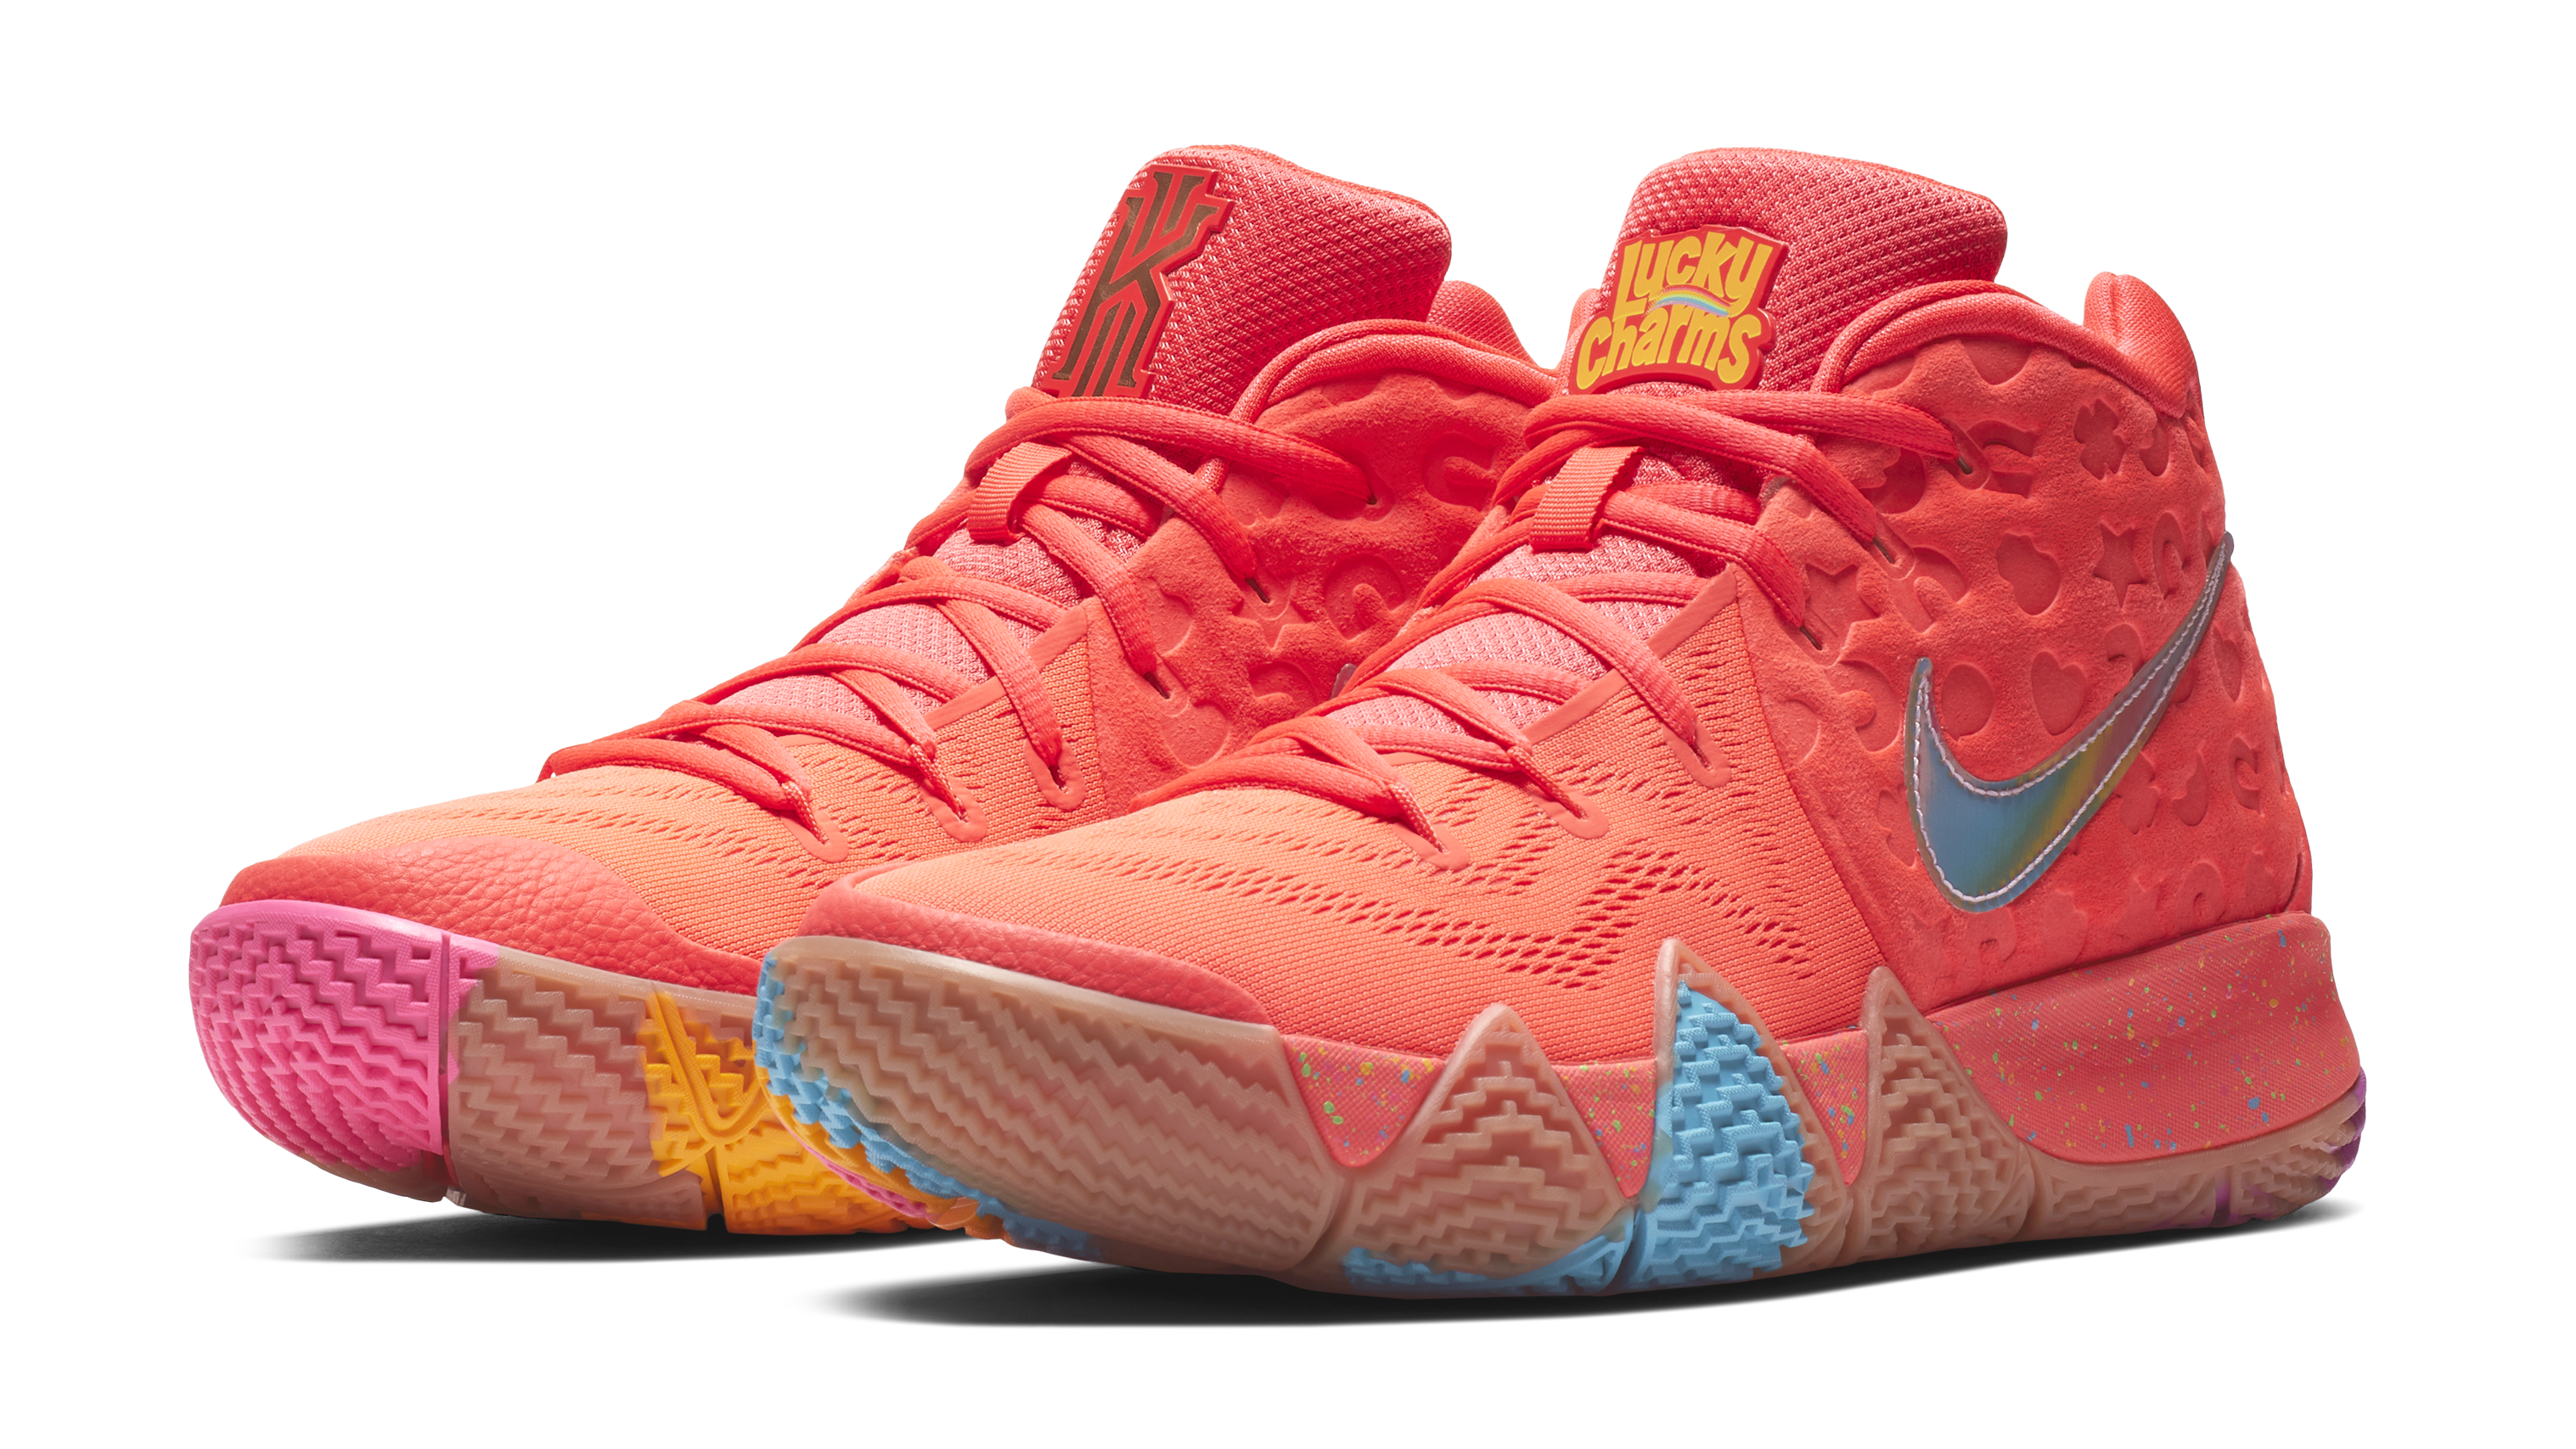 e04745b4a5c7 Nike Kyrie 4  Cereal Pack  House of Hoops Early Release Date